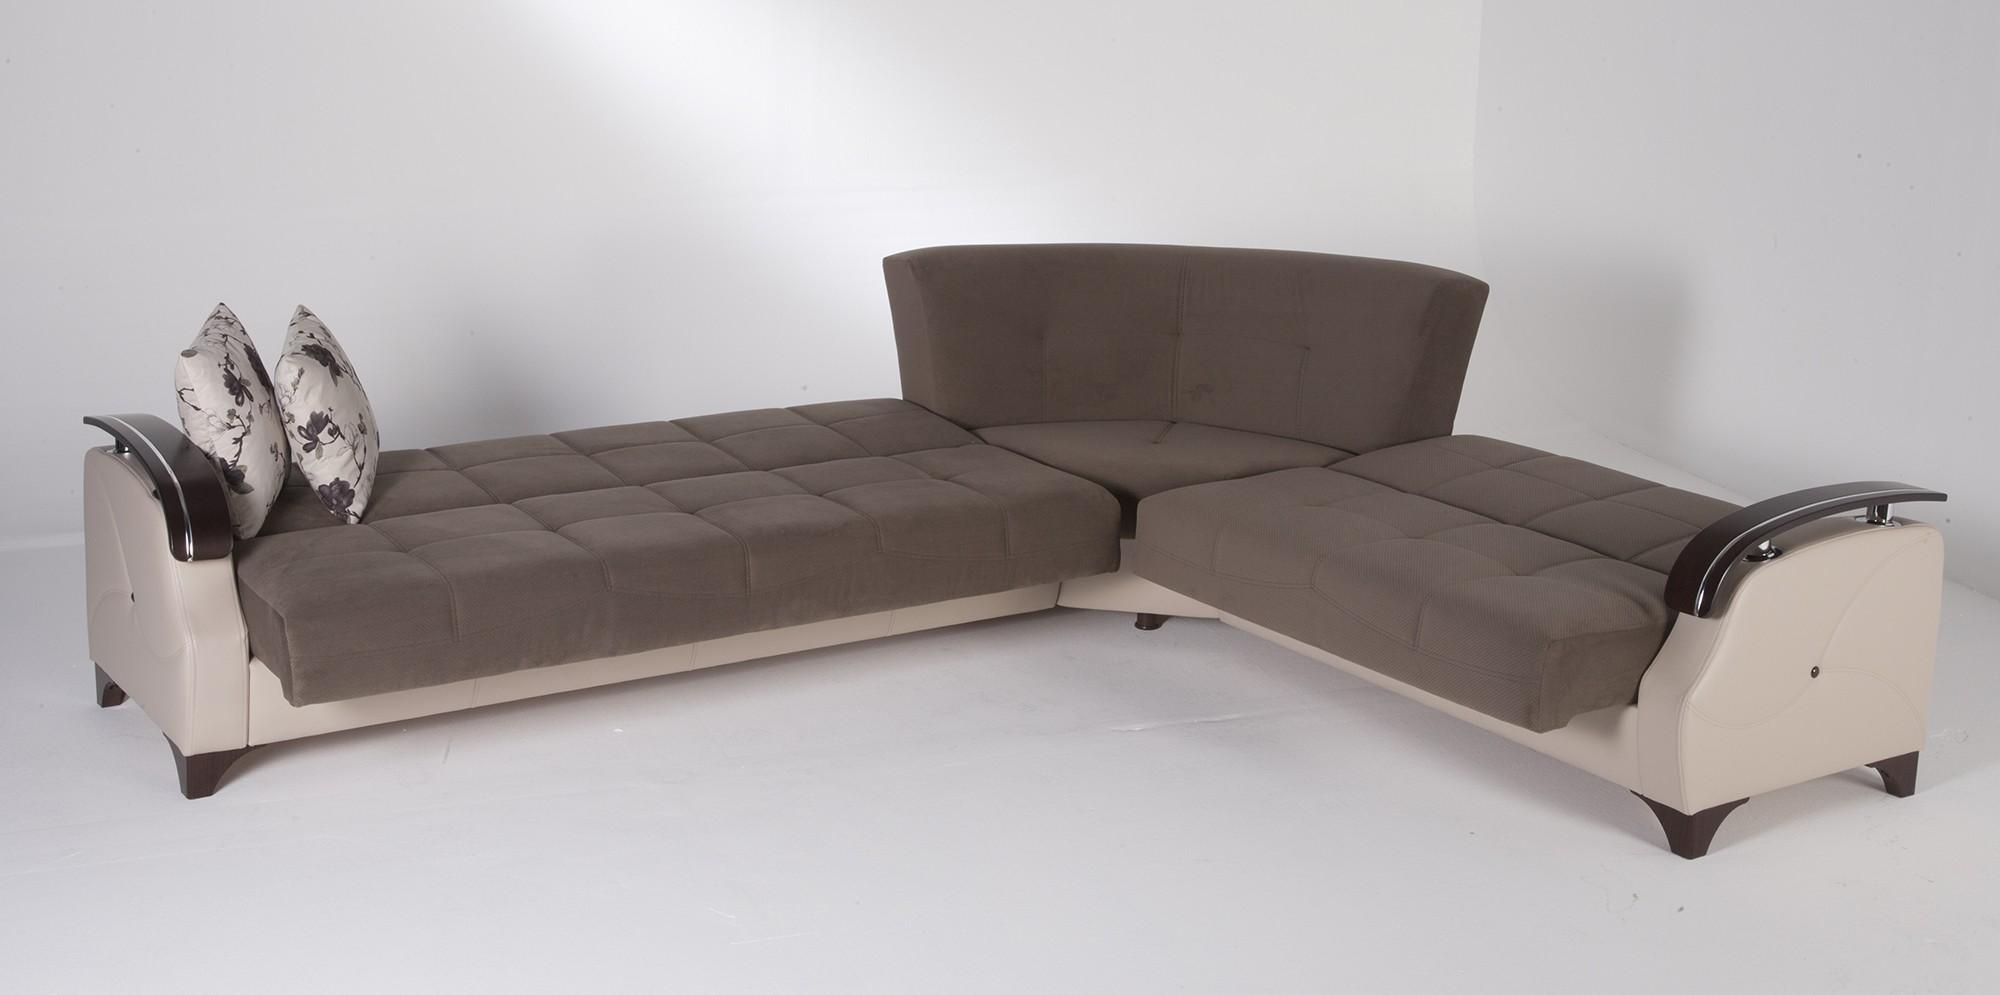 Sectional Sleeper Sofas For Sale – S3Net – Sectional Sofas Sale Within Sleeper Sectional Sofas (Image 12 of 20)